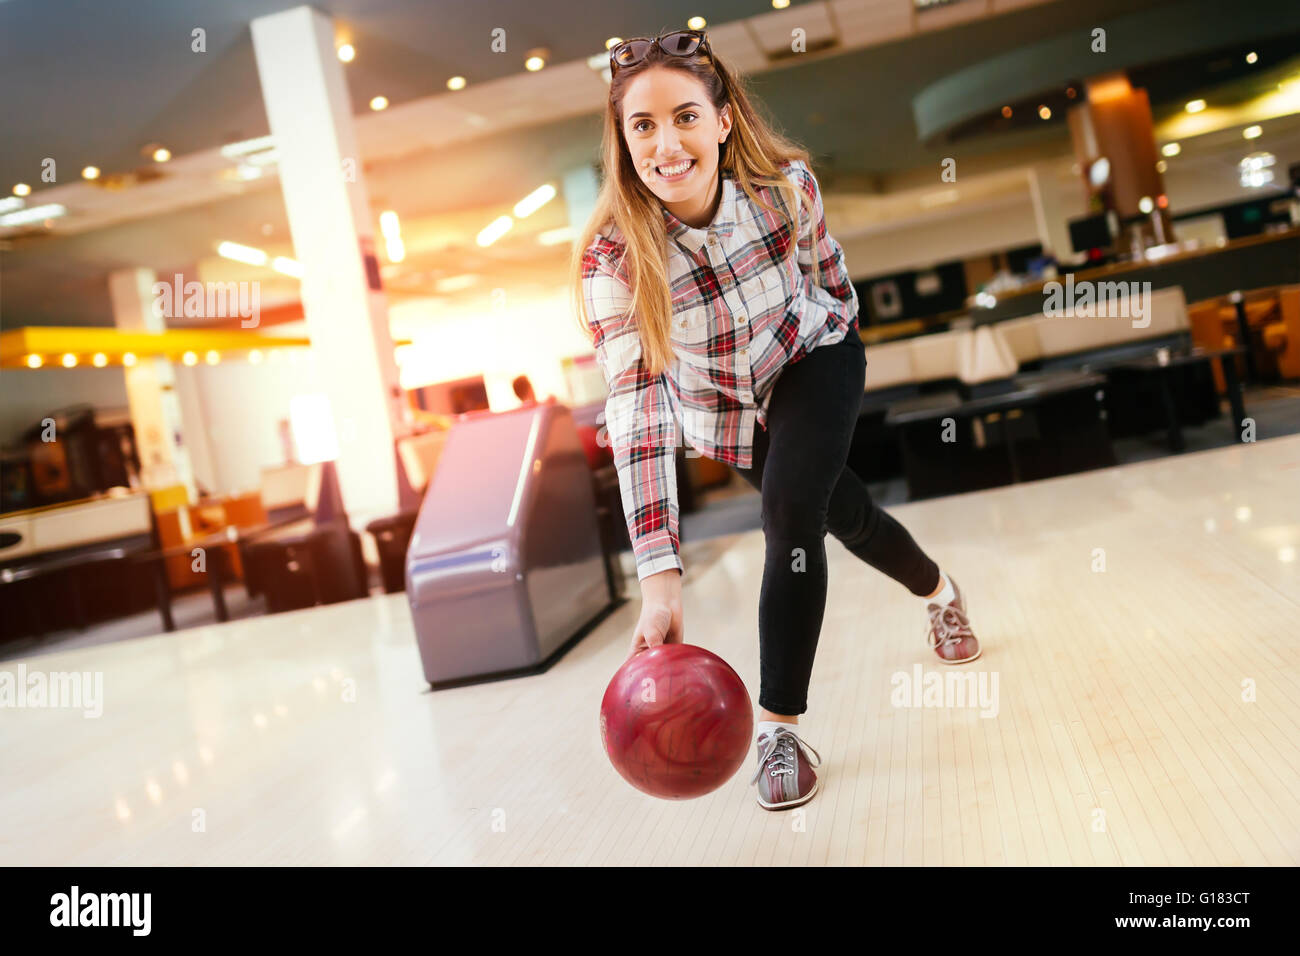 Beautiful woman enjoying  bowling - Stock Image